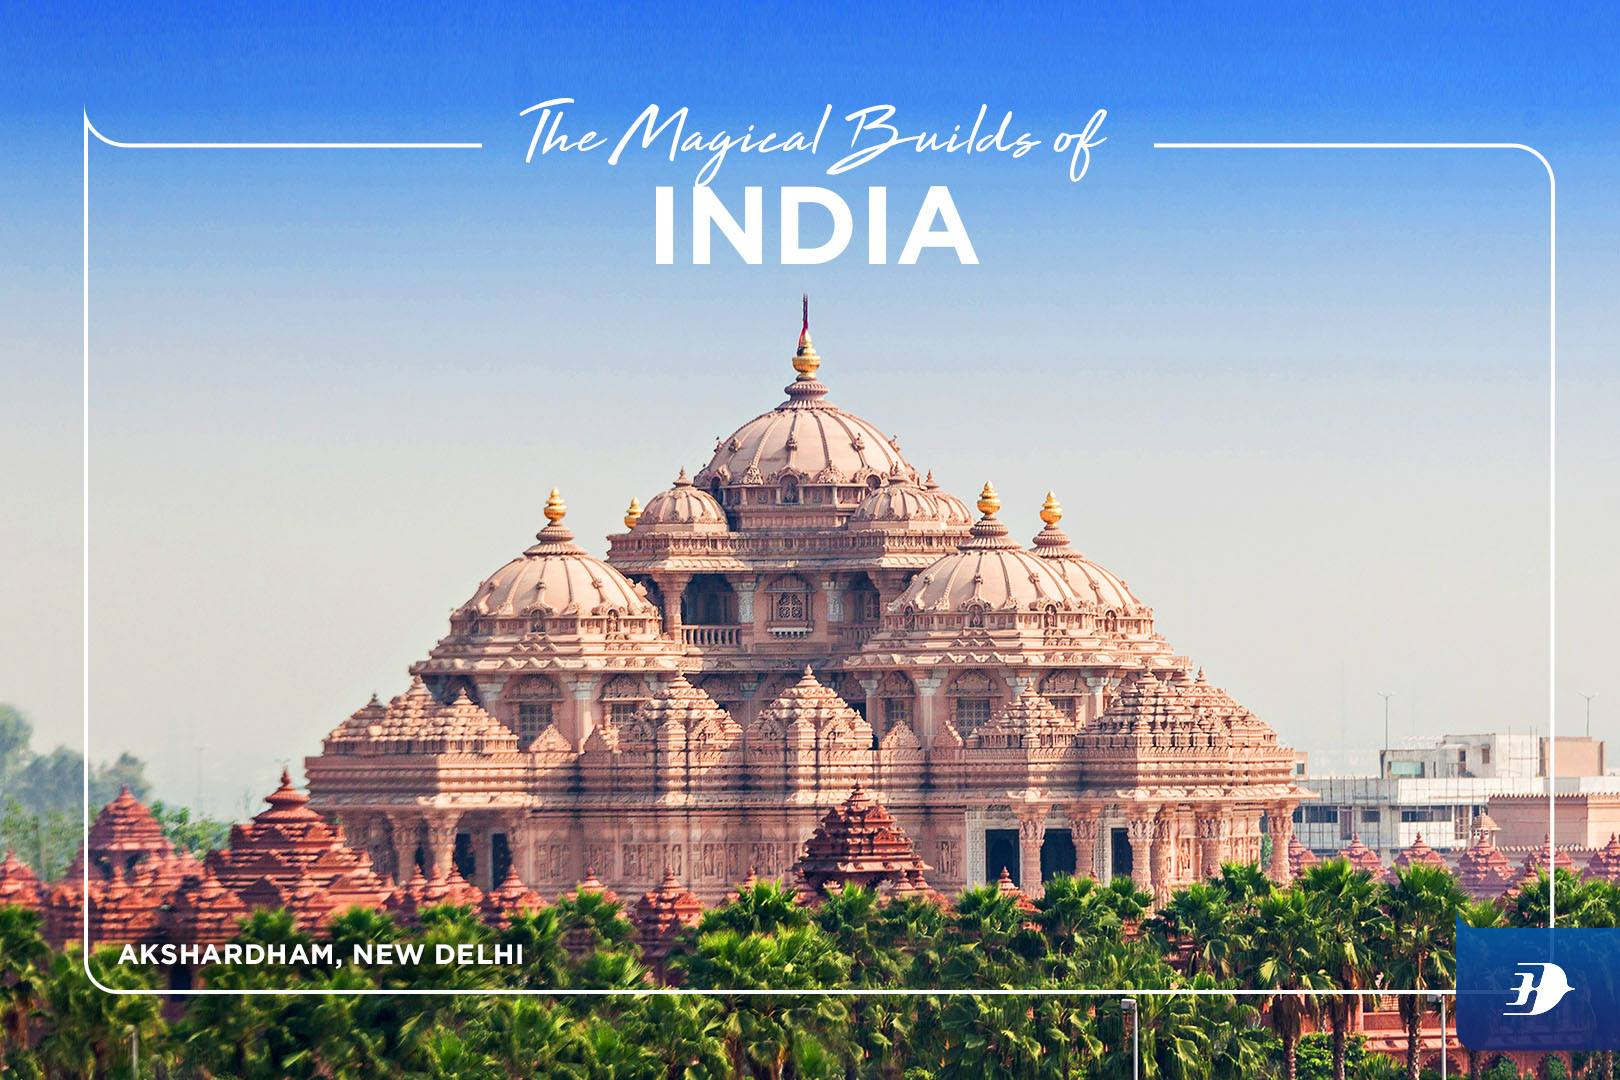 The Magical Builds of India